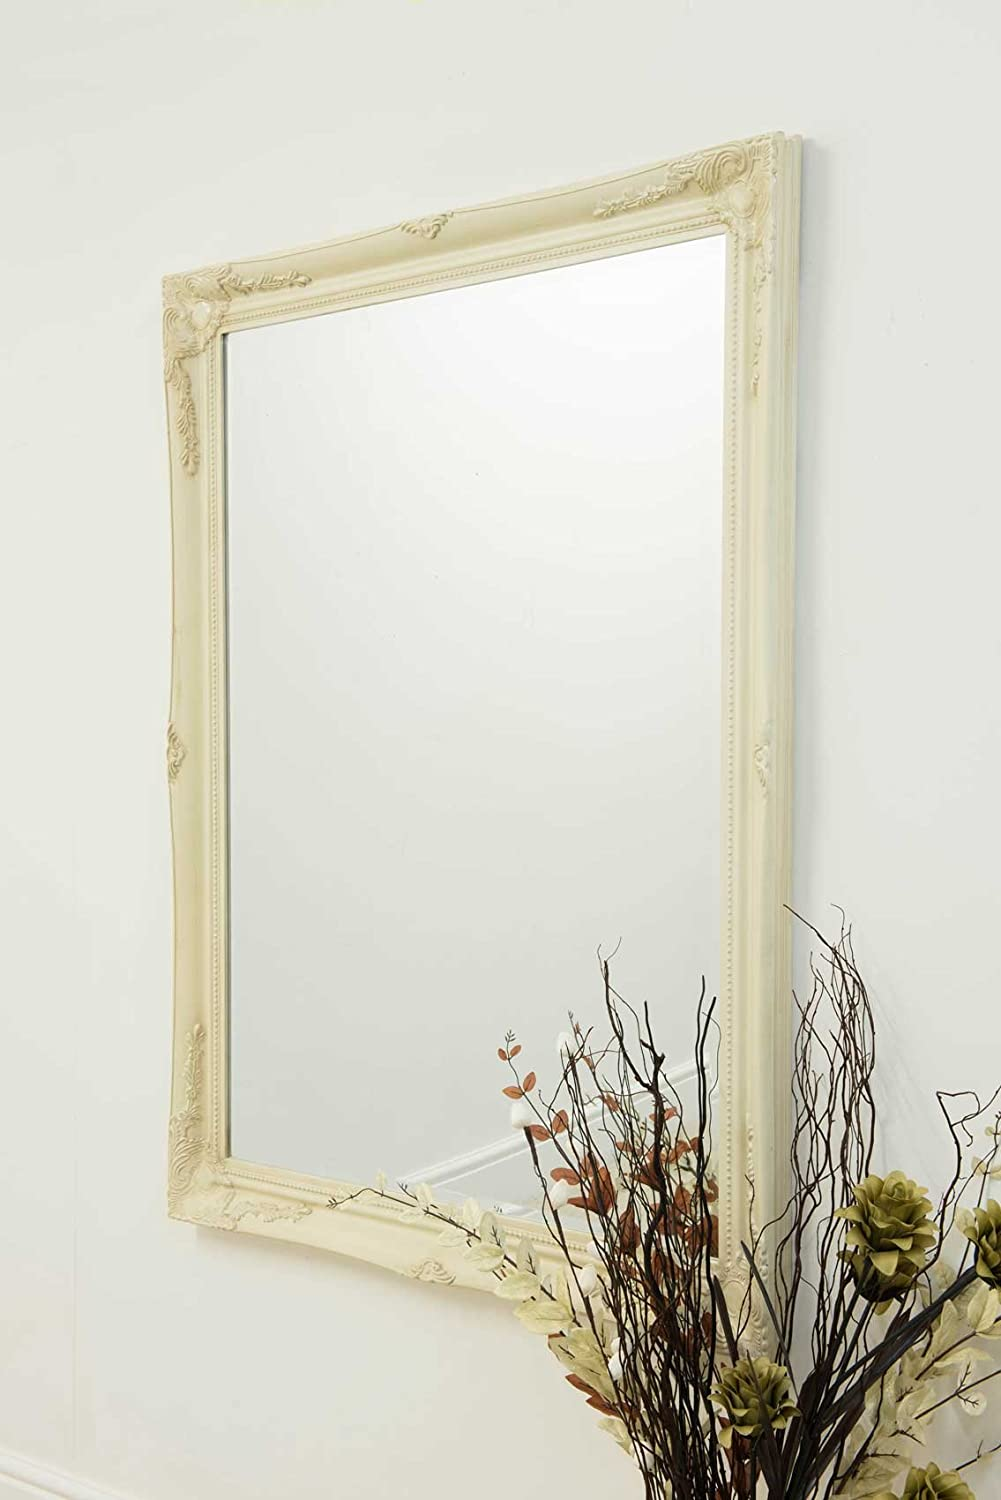 Large Full Length Leaner Classic Ornate Styled Silver Mirror 5ft7 x 2ft7 (170cm x 79cm) Ivory